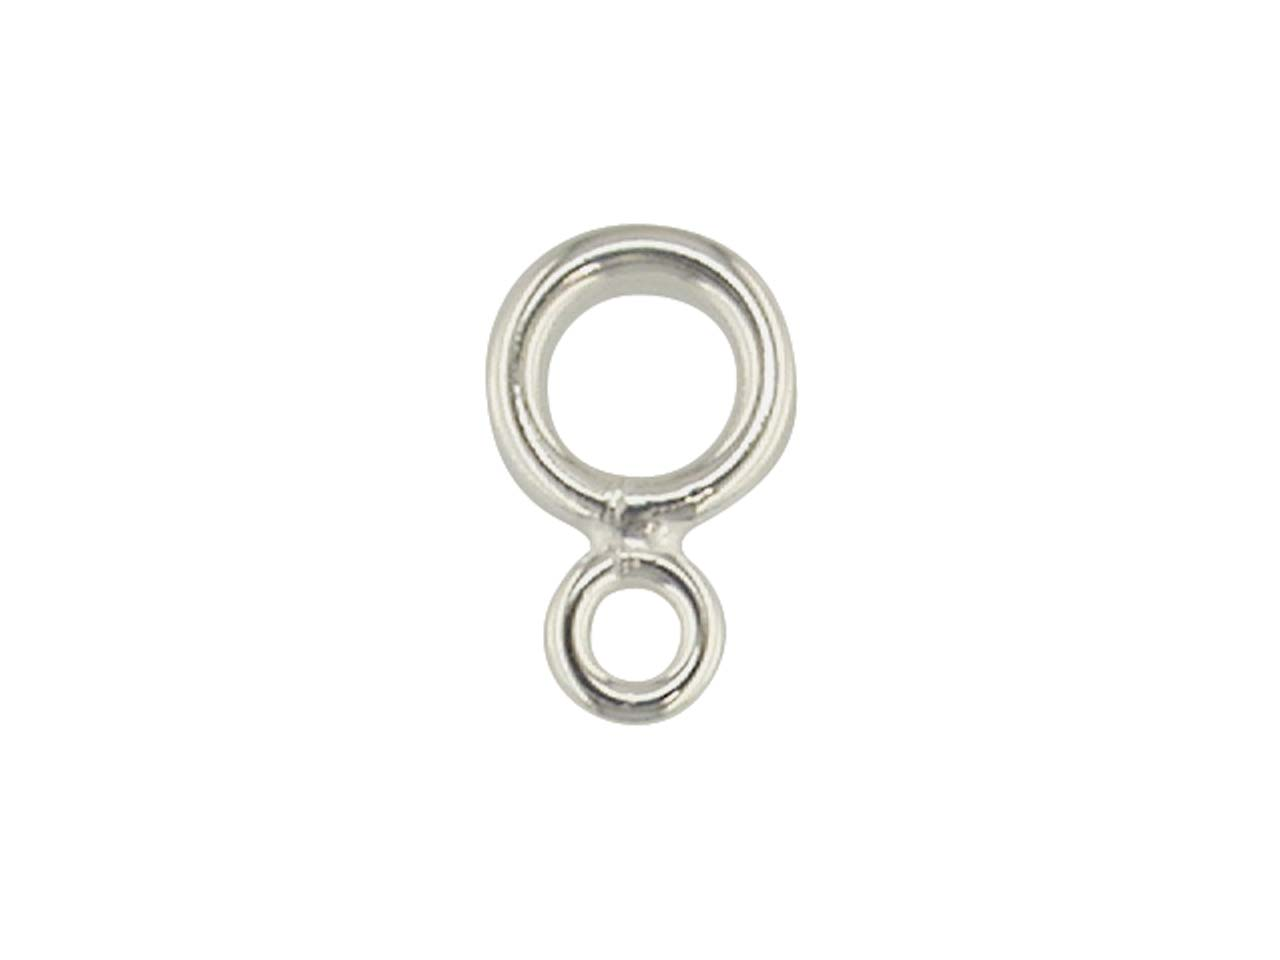 Sterling Silver Double Jump Ring    Pack of 10, Small Ring 2.6mm, Large Ring 4.5mm